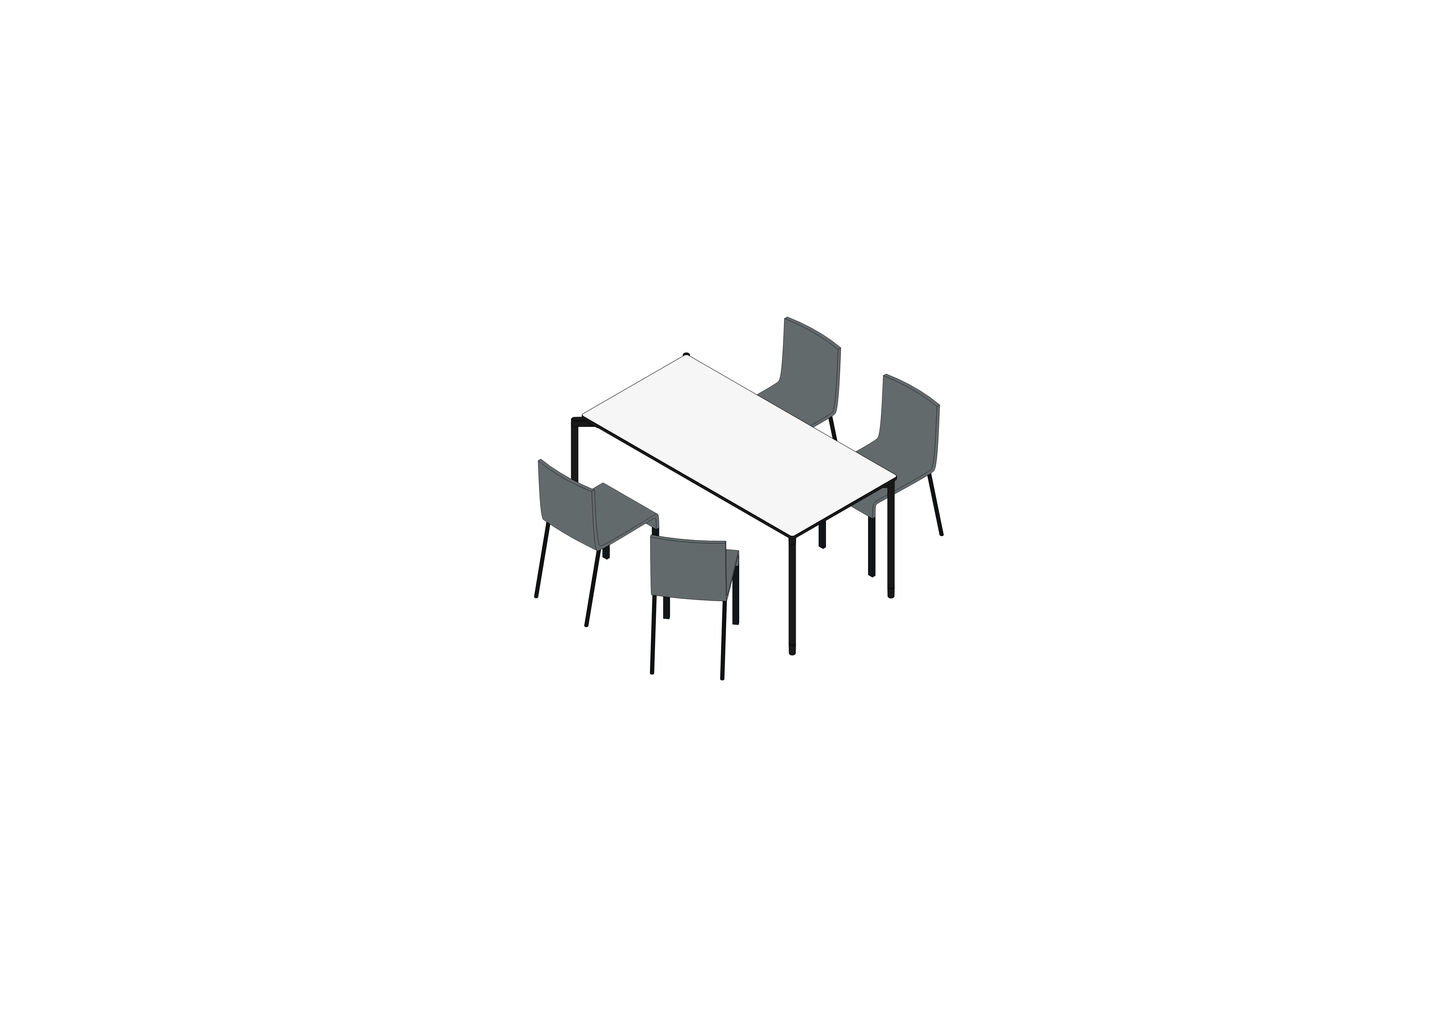 01 - MAP Table 150 x 75, .03 -3D